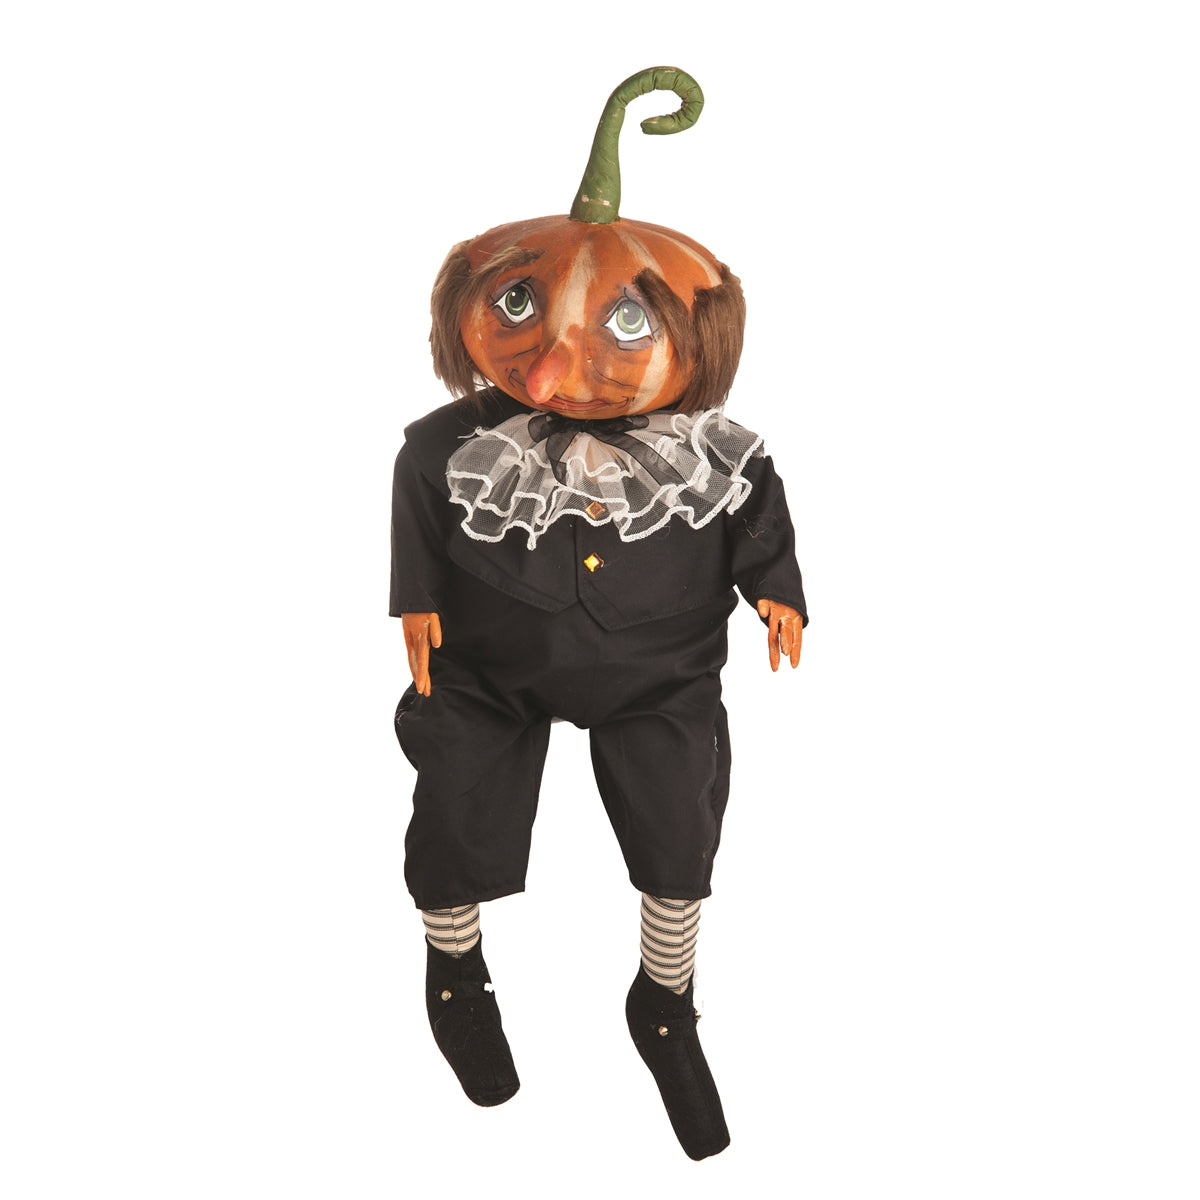 Gersham Pumpkin Head Doll by Joe Spencer